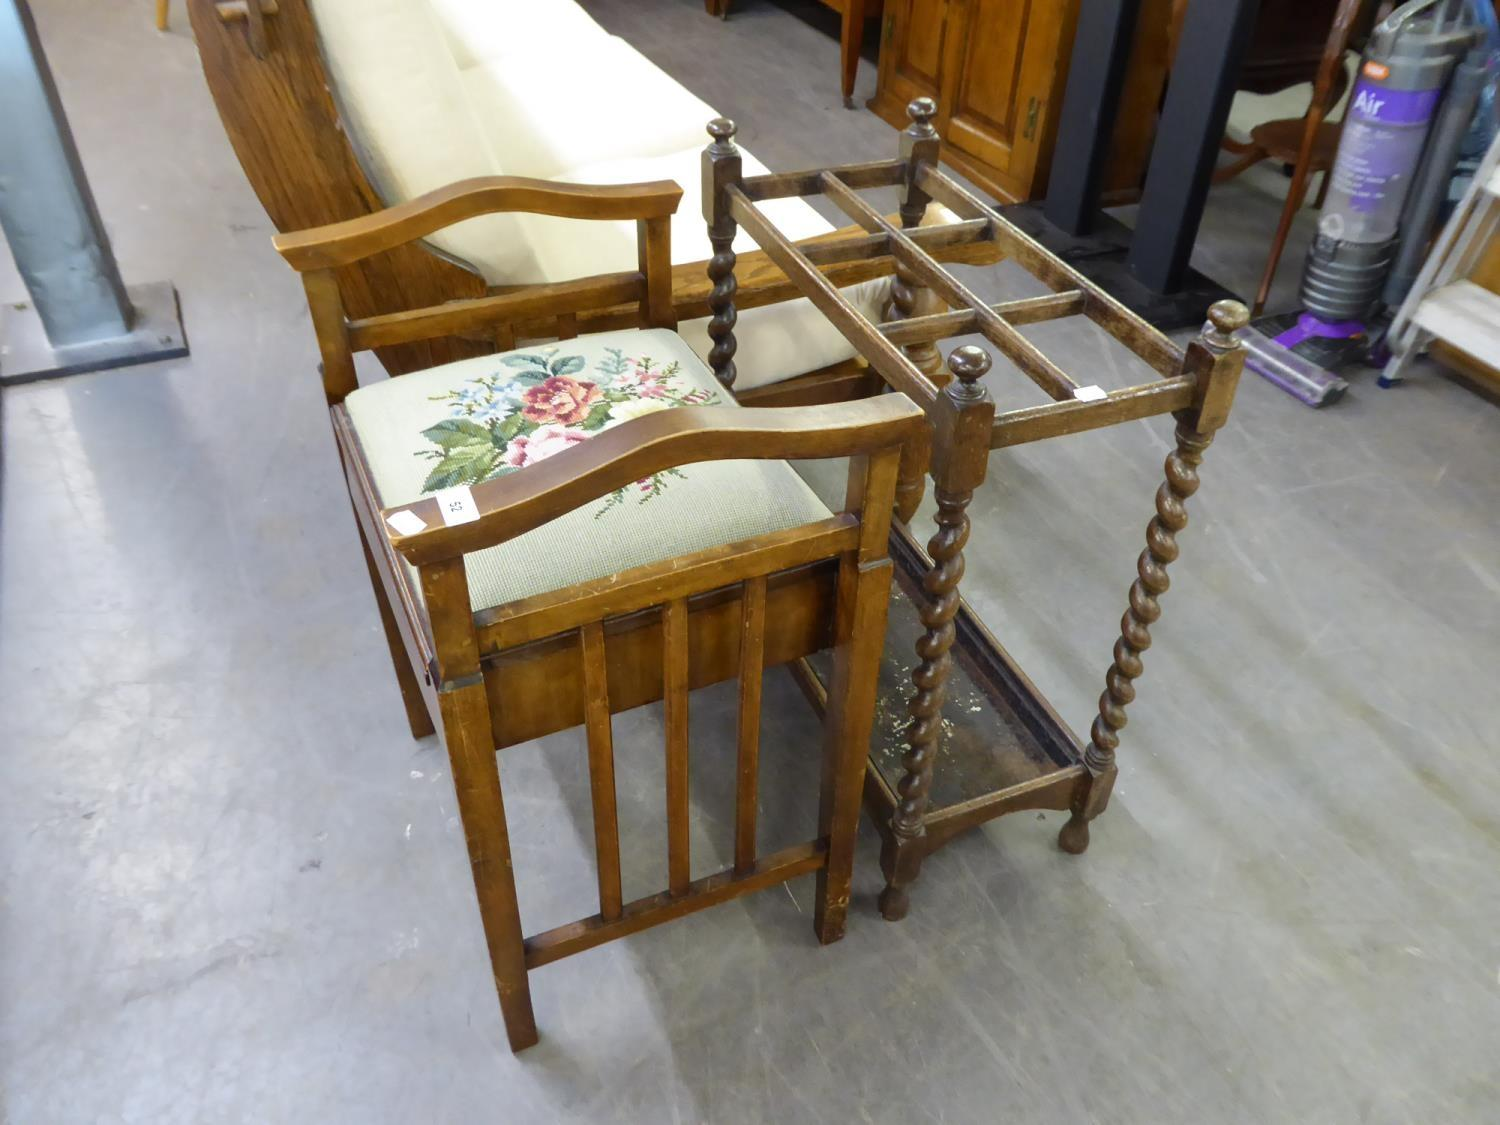 A PIANO STOOL WITH FLORAL TAPESTRY SEAT AND A STICK STAND ON BARLEY TWIST SUPPORTS